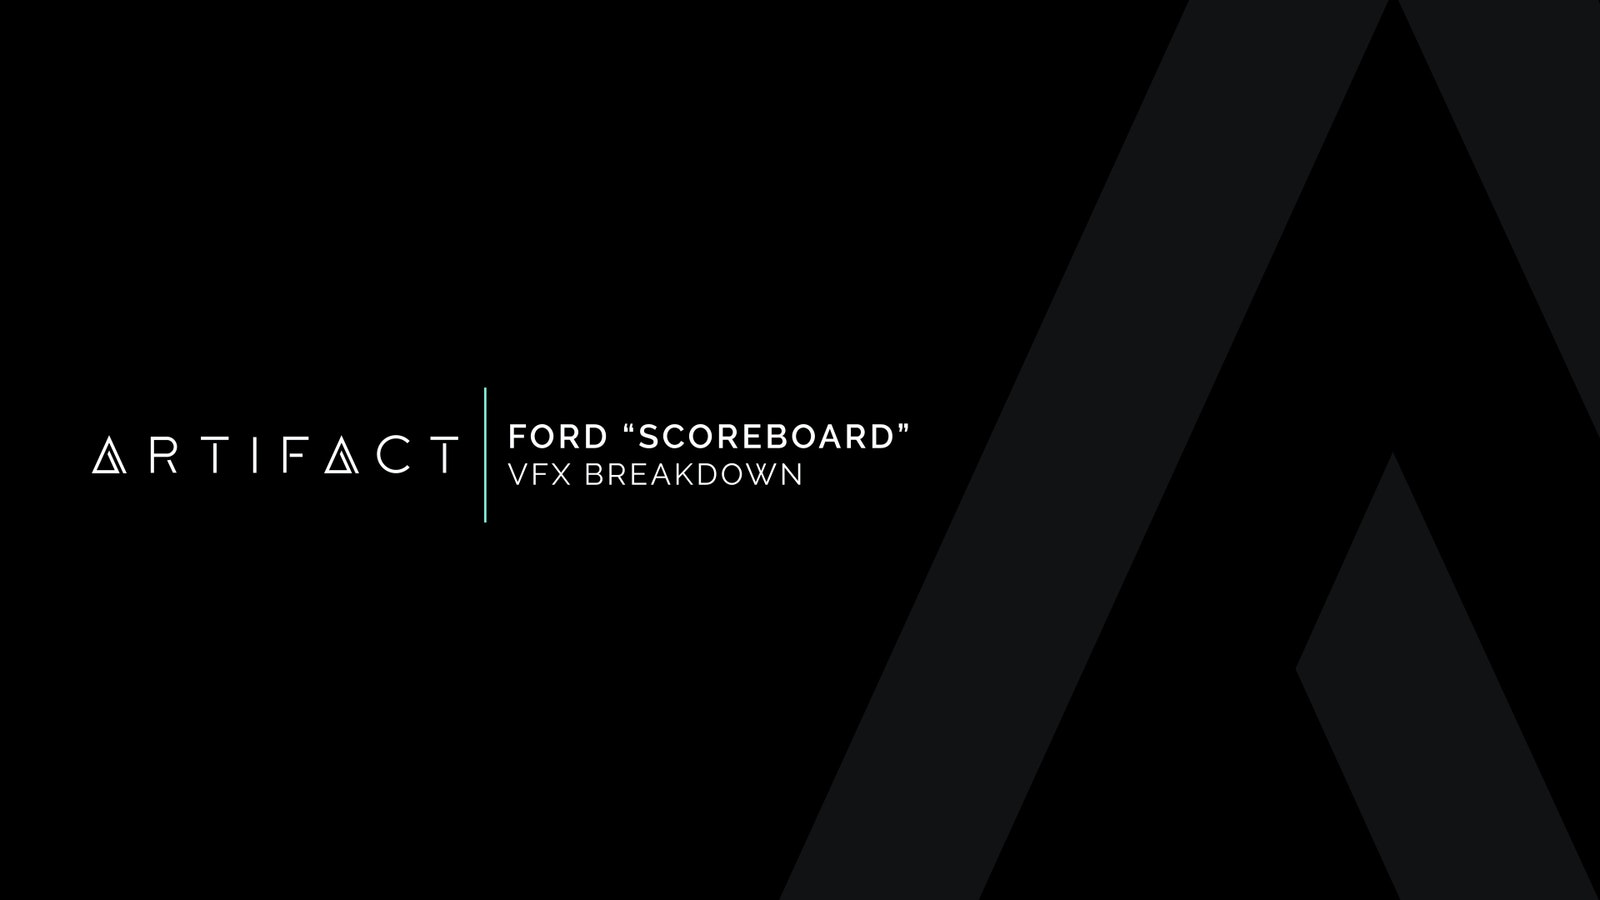 Ford Scoreboard VFX Breakdown